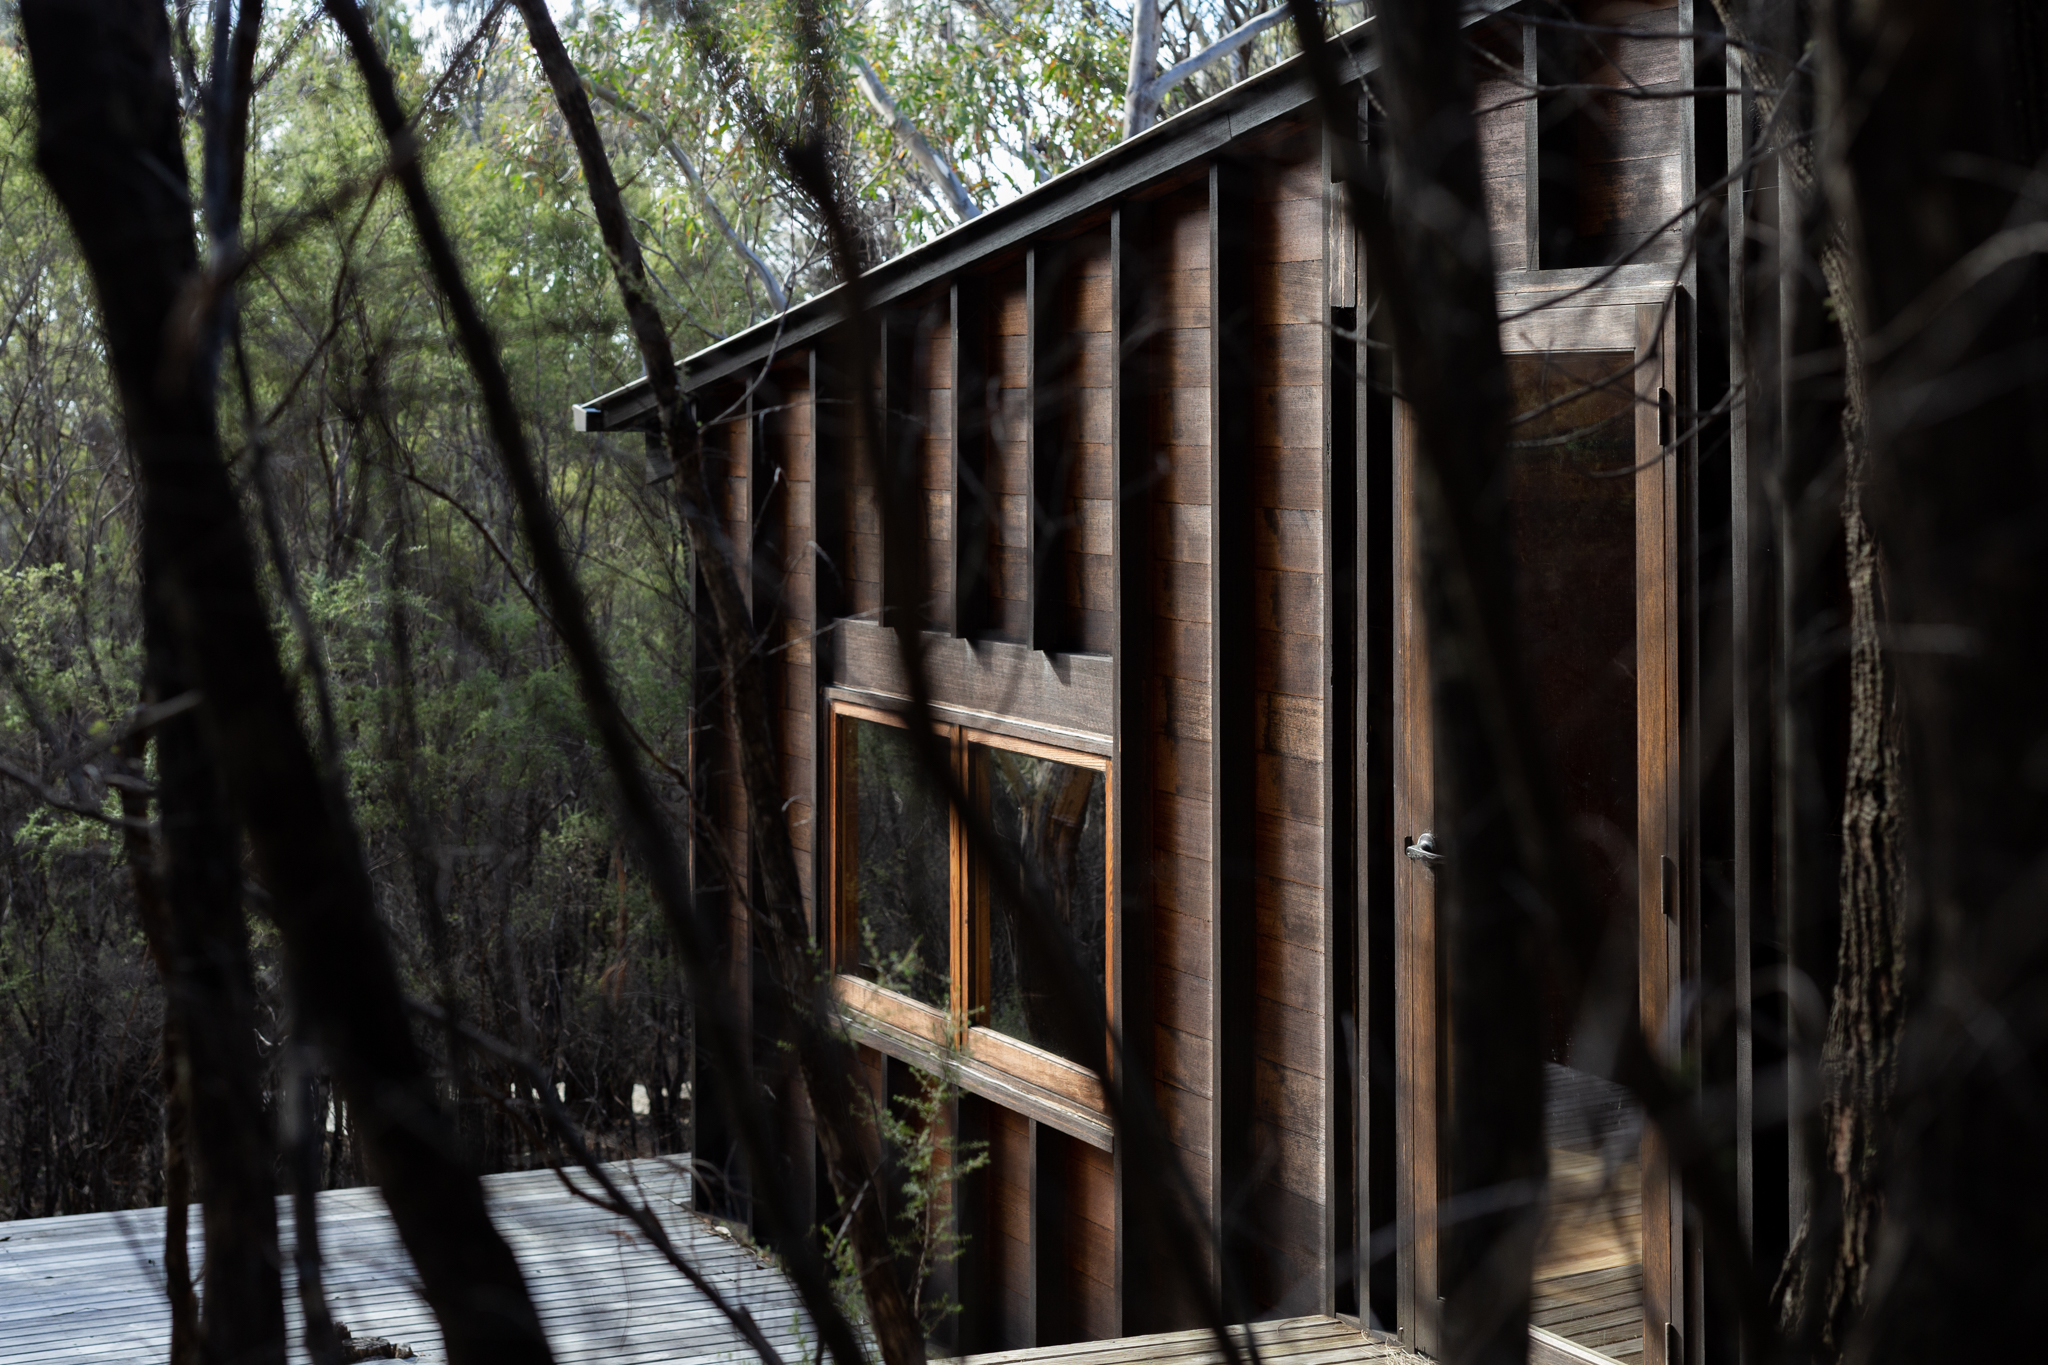 Comprising Of Primarily Tasmanian Sourced Timber, The Almost Charred Appearance Of The Hut Camouflages The Structure From The Approaching